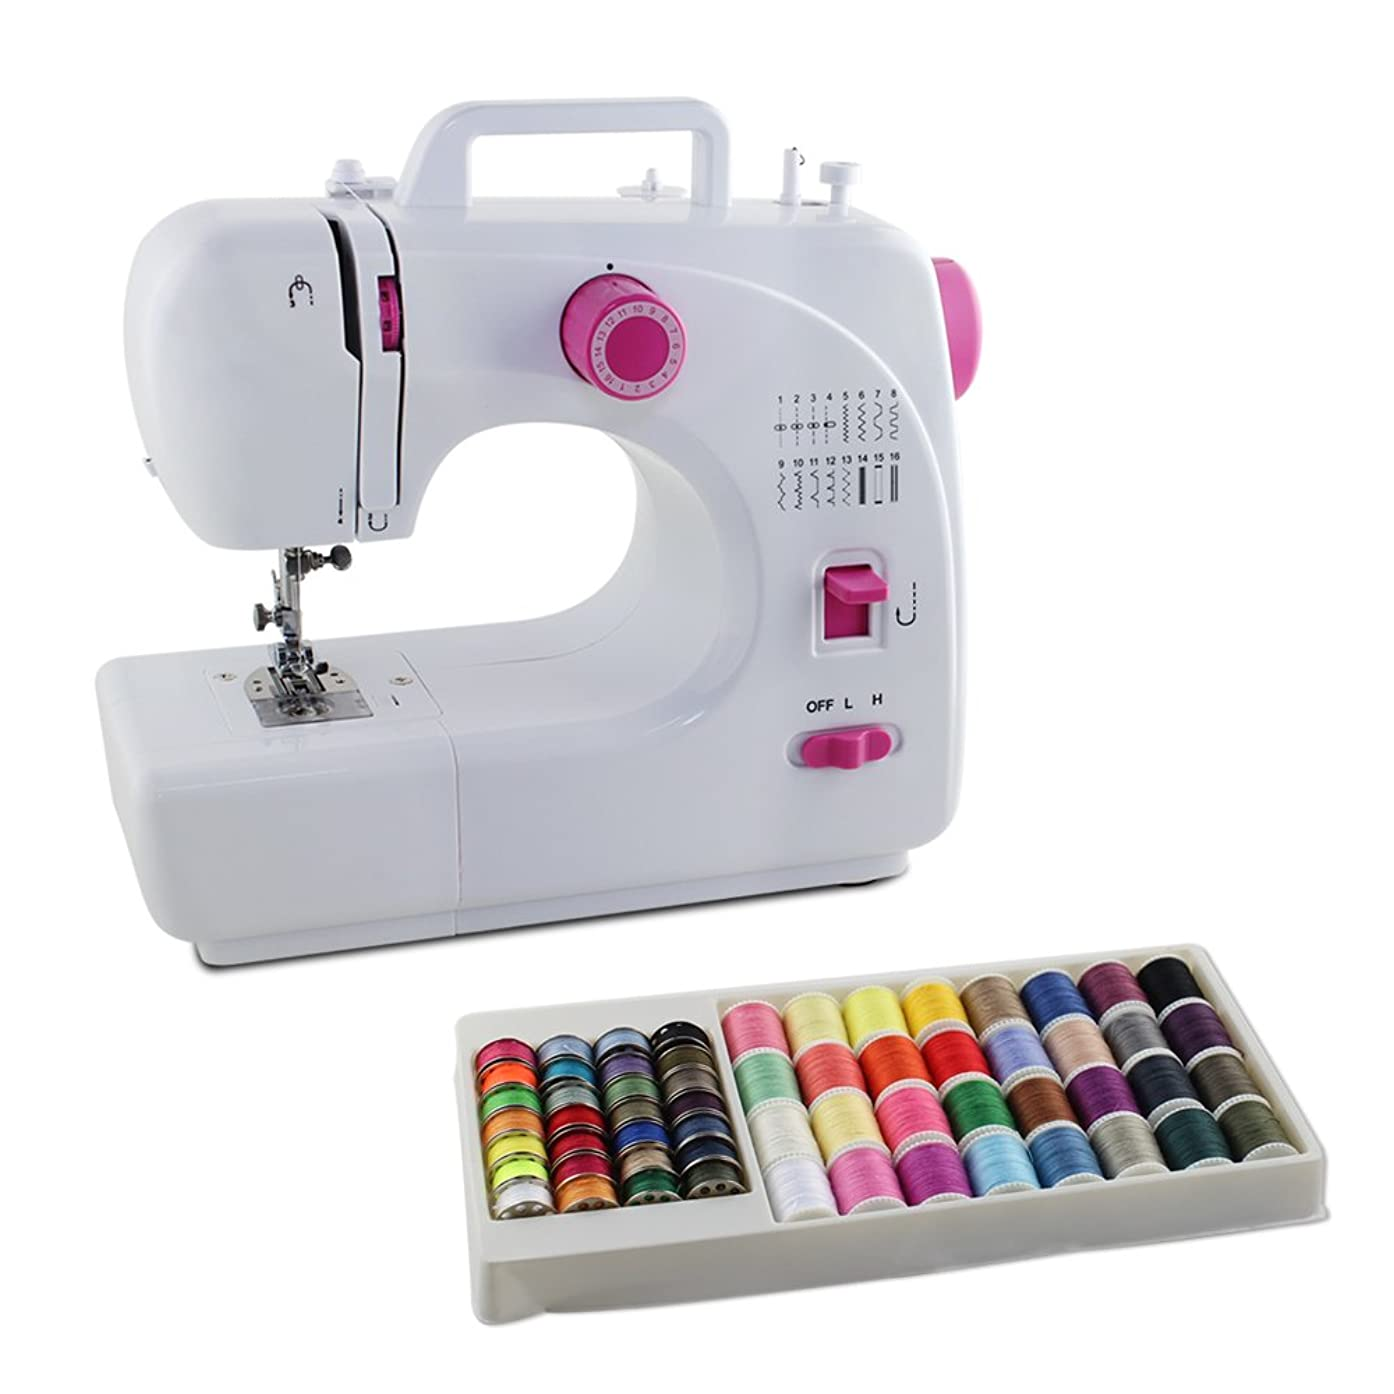 LIANTRAL Sewing Machine 16 Built-in Stitch, 1-Step Button Sewing, Free with 60 Threads,?Perfect Compact Sewing Beginner Machine